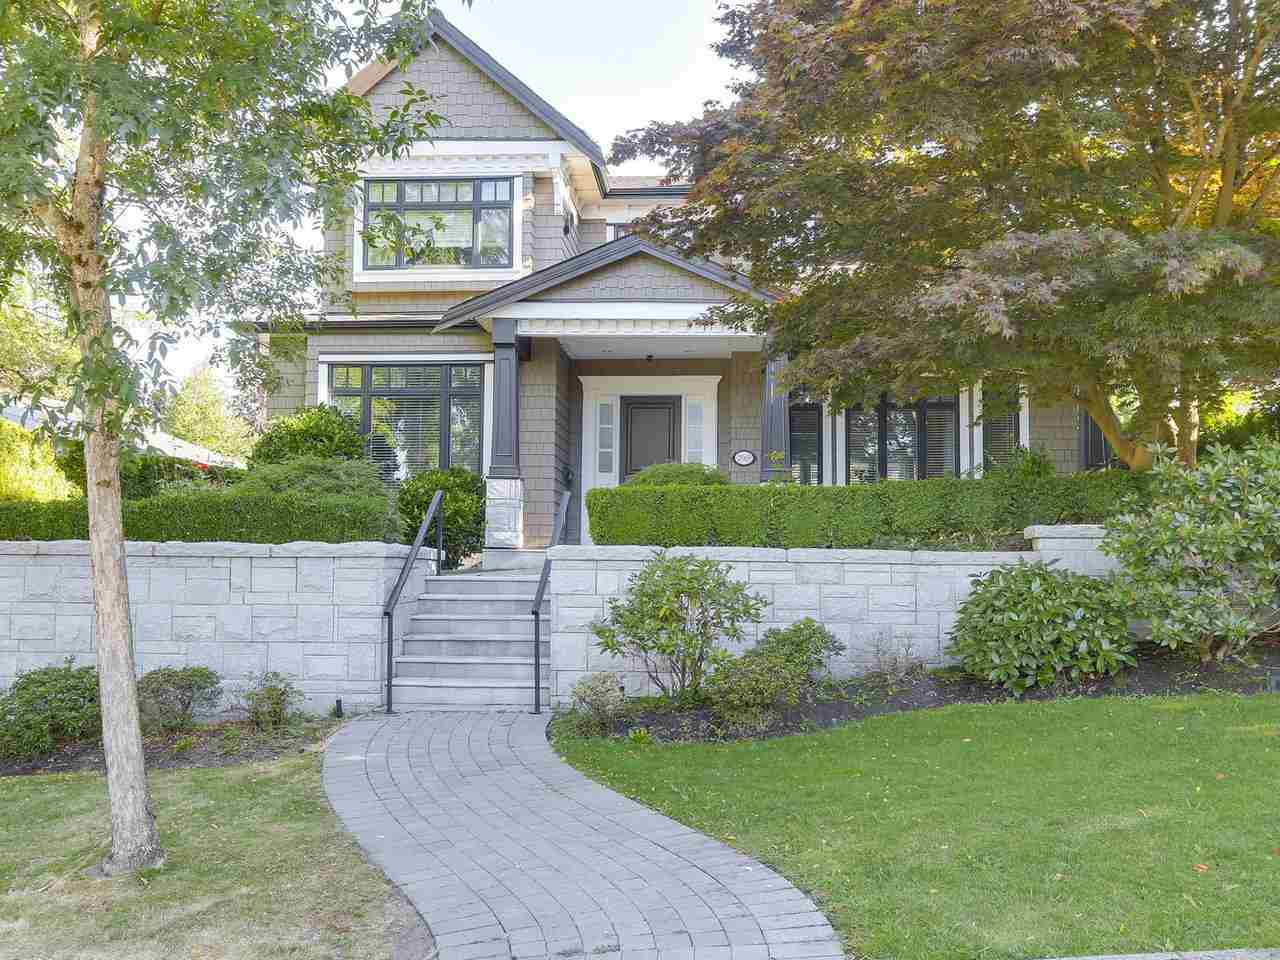 Detached at 2069 W 28TH AVENUE, Vancouver West, British Columbia. Image 1